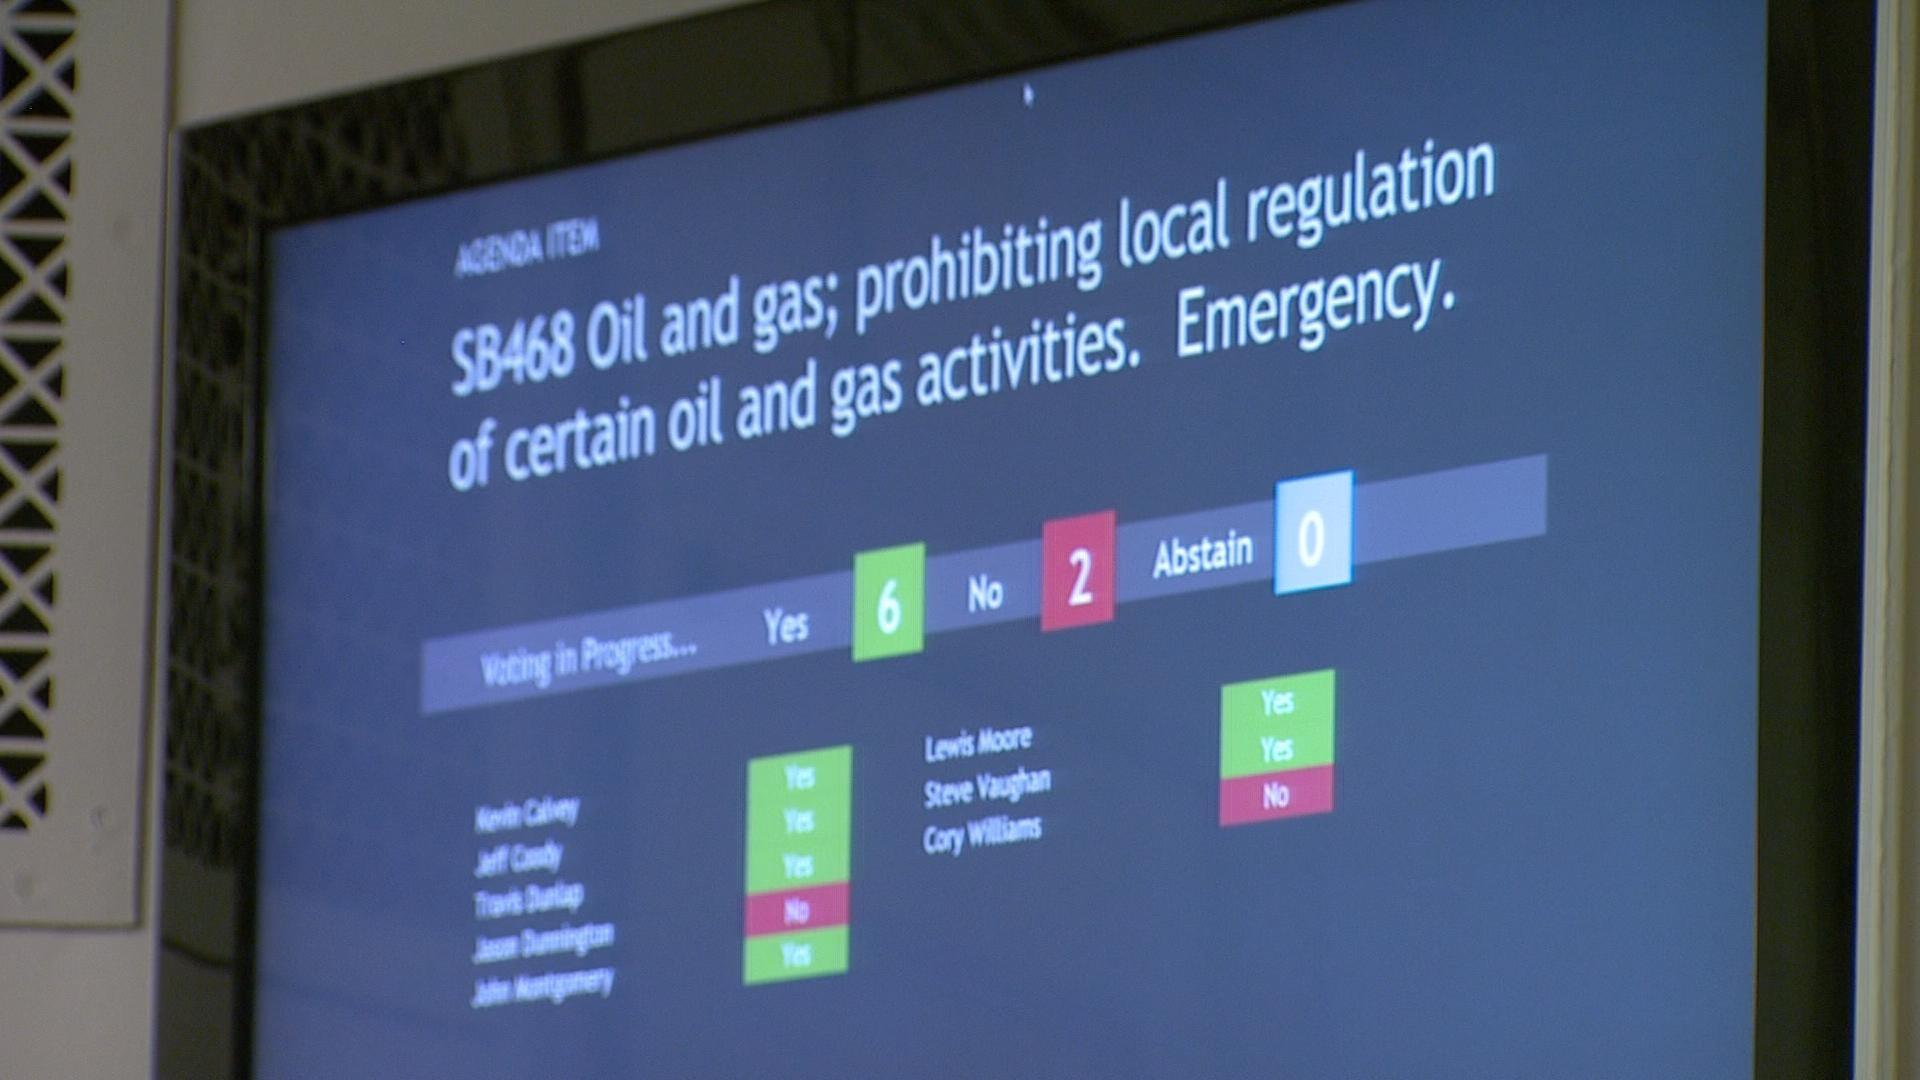 Video drilling regulations watch onr online oklahoma for Oeta schedule